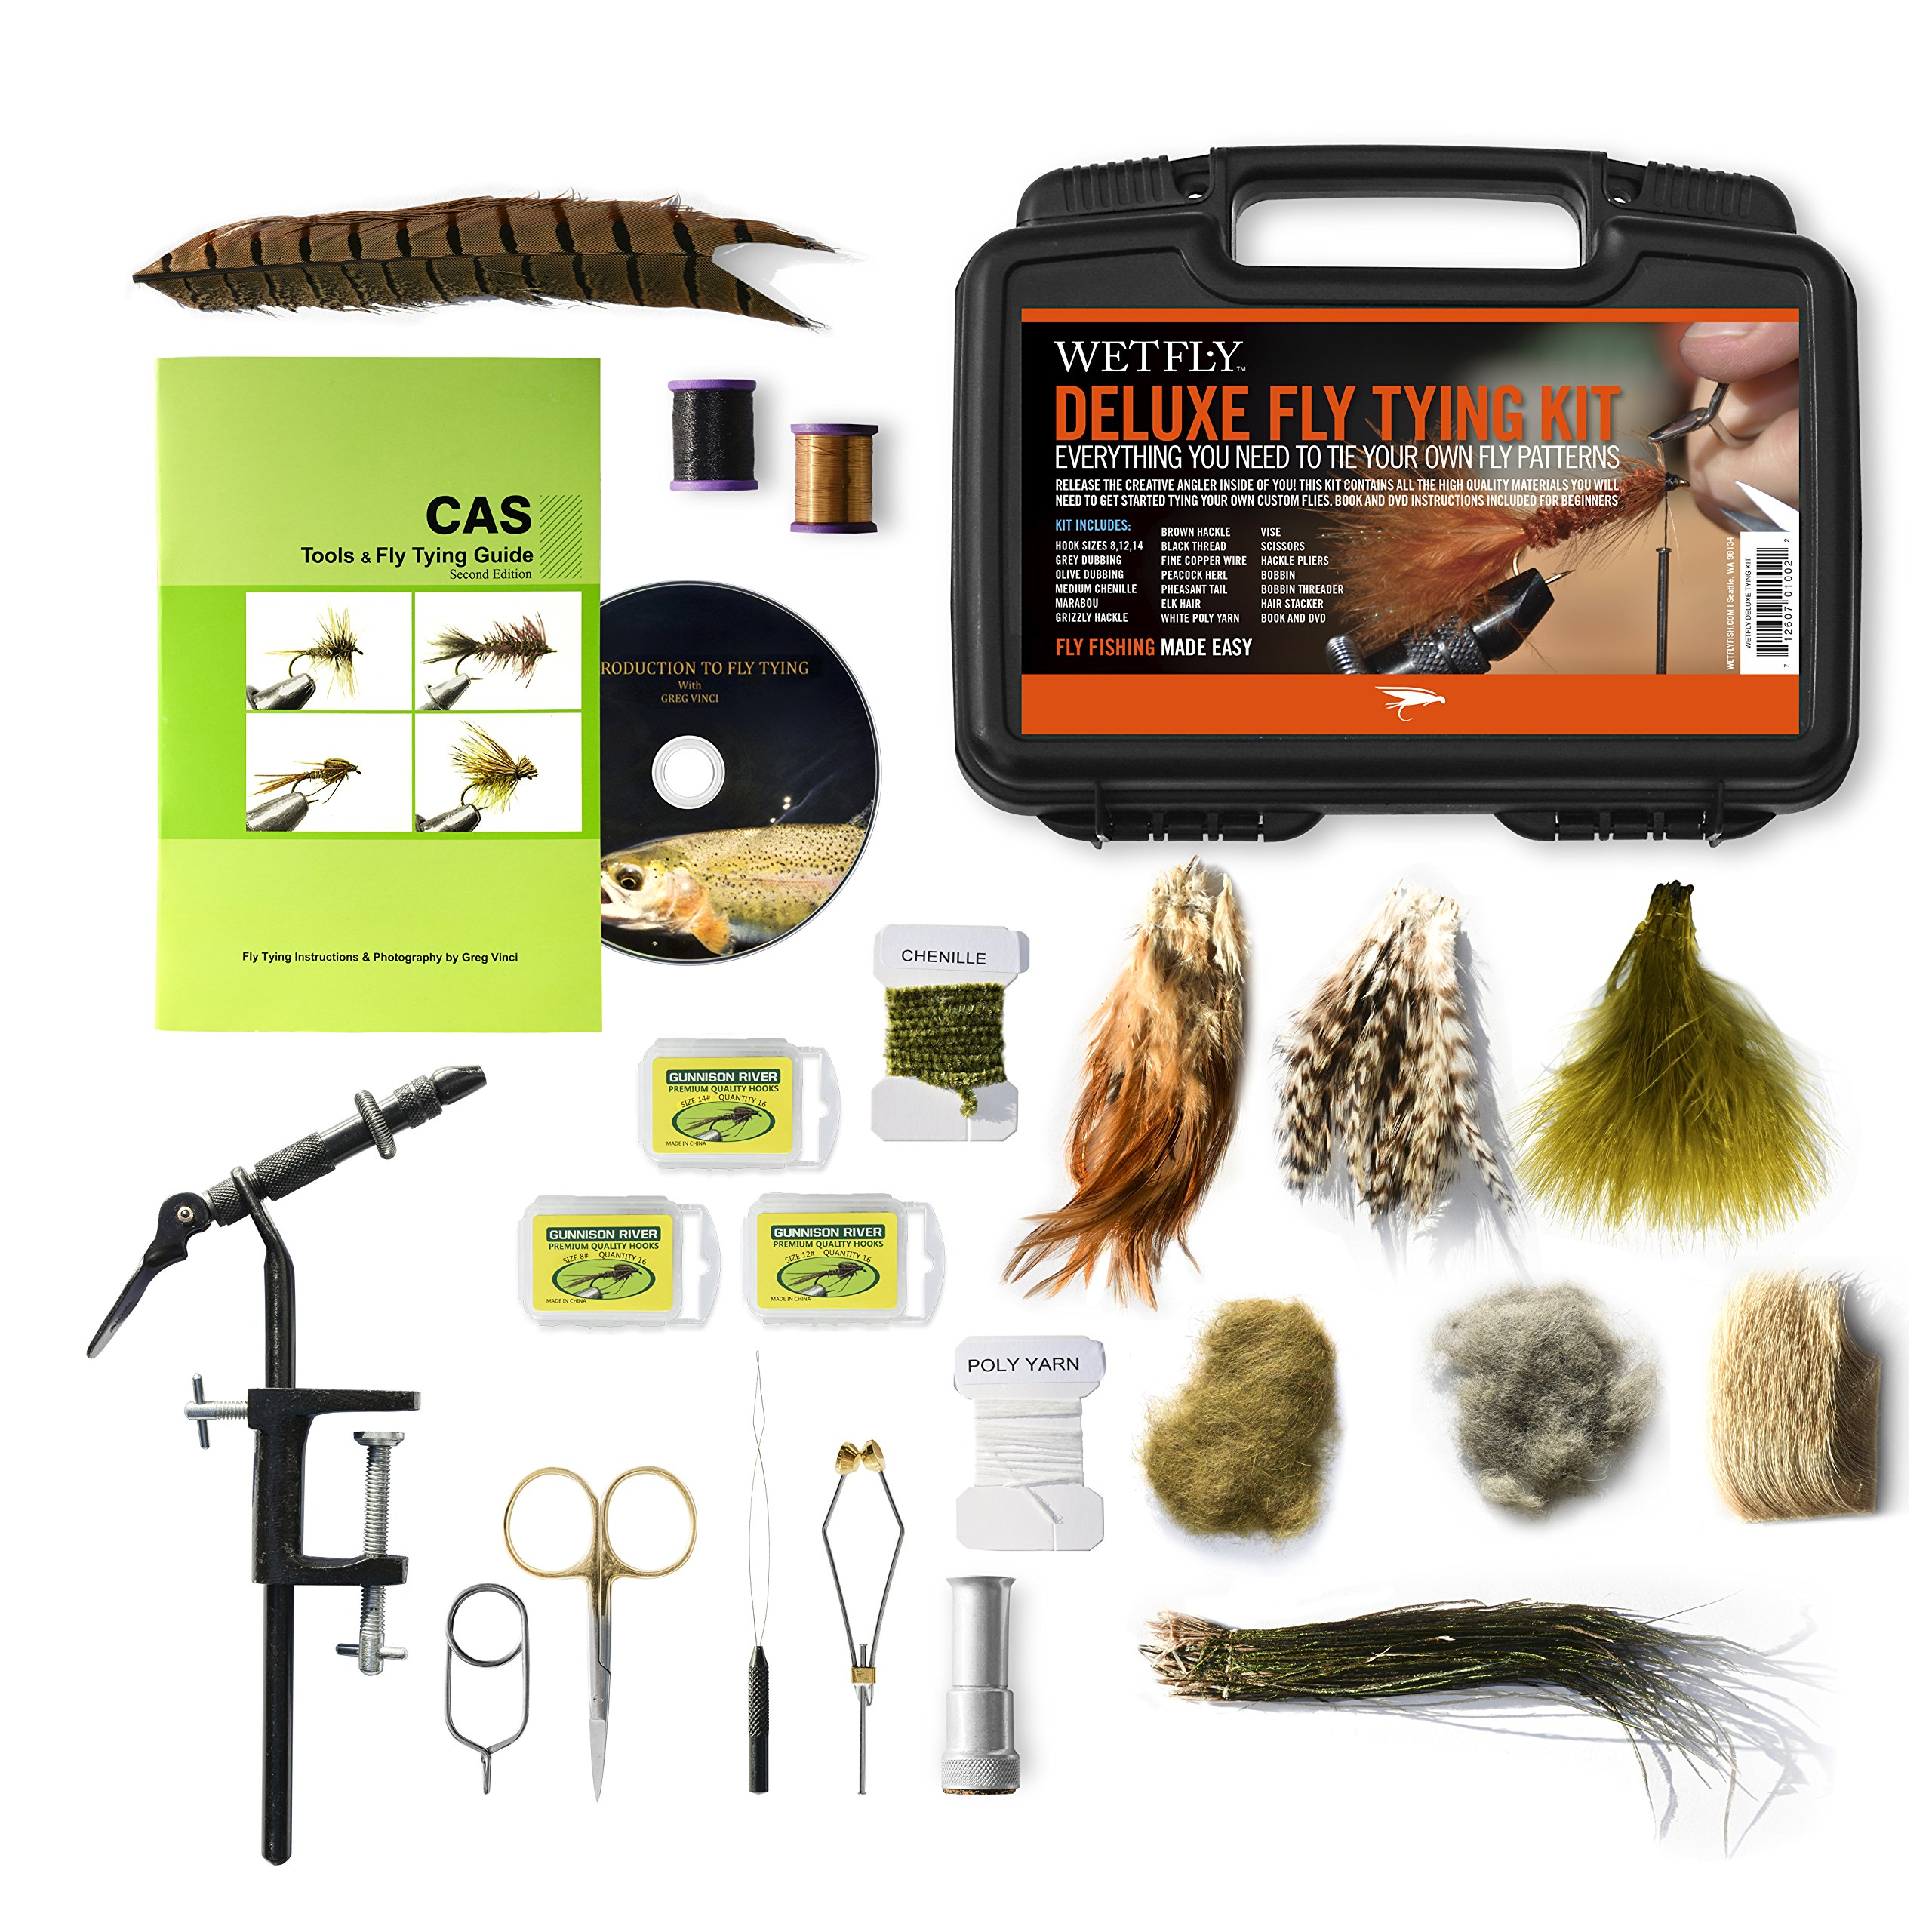 WETFLY Deluxe Fly Tying Kit with Book and Dvd. This Is Our Most Popular Fly Tying Kit. by WETFLY